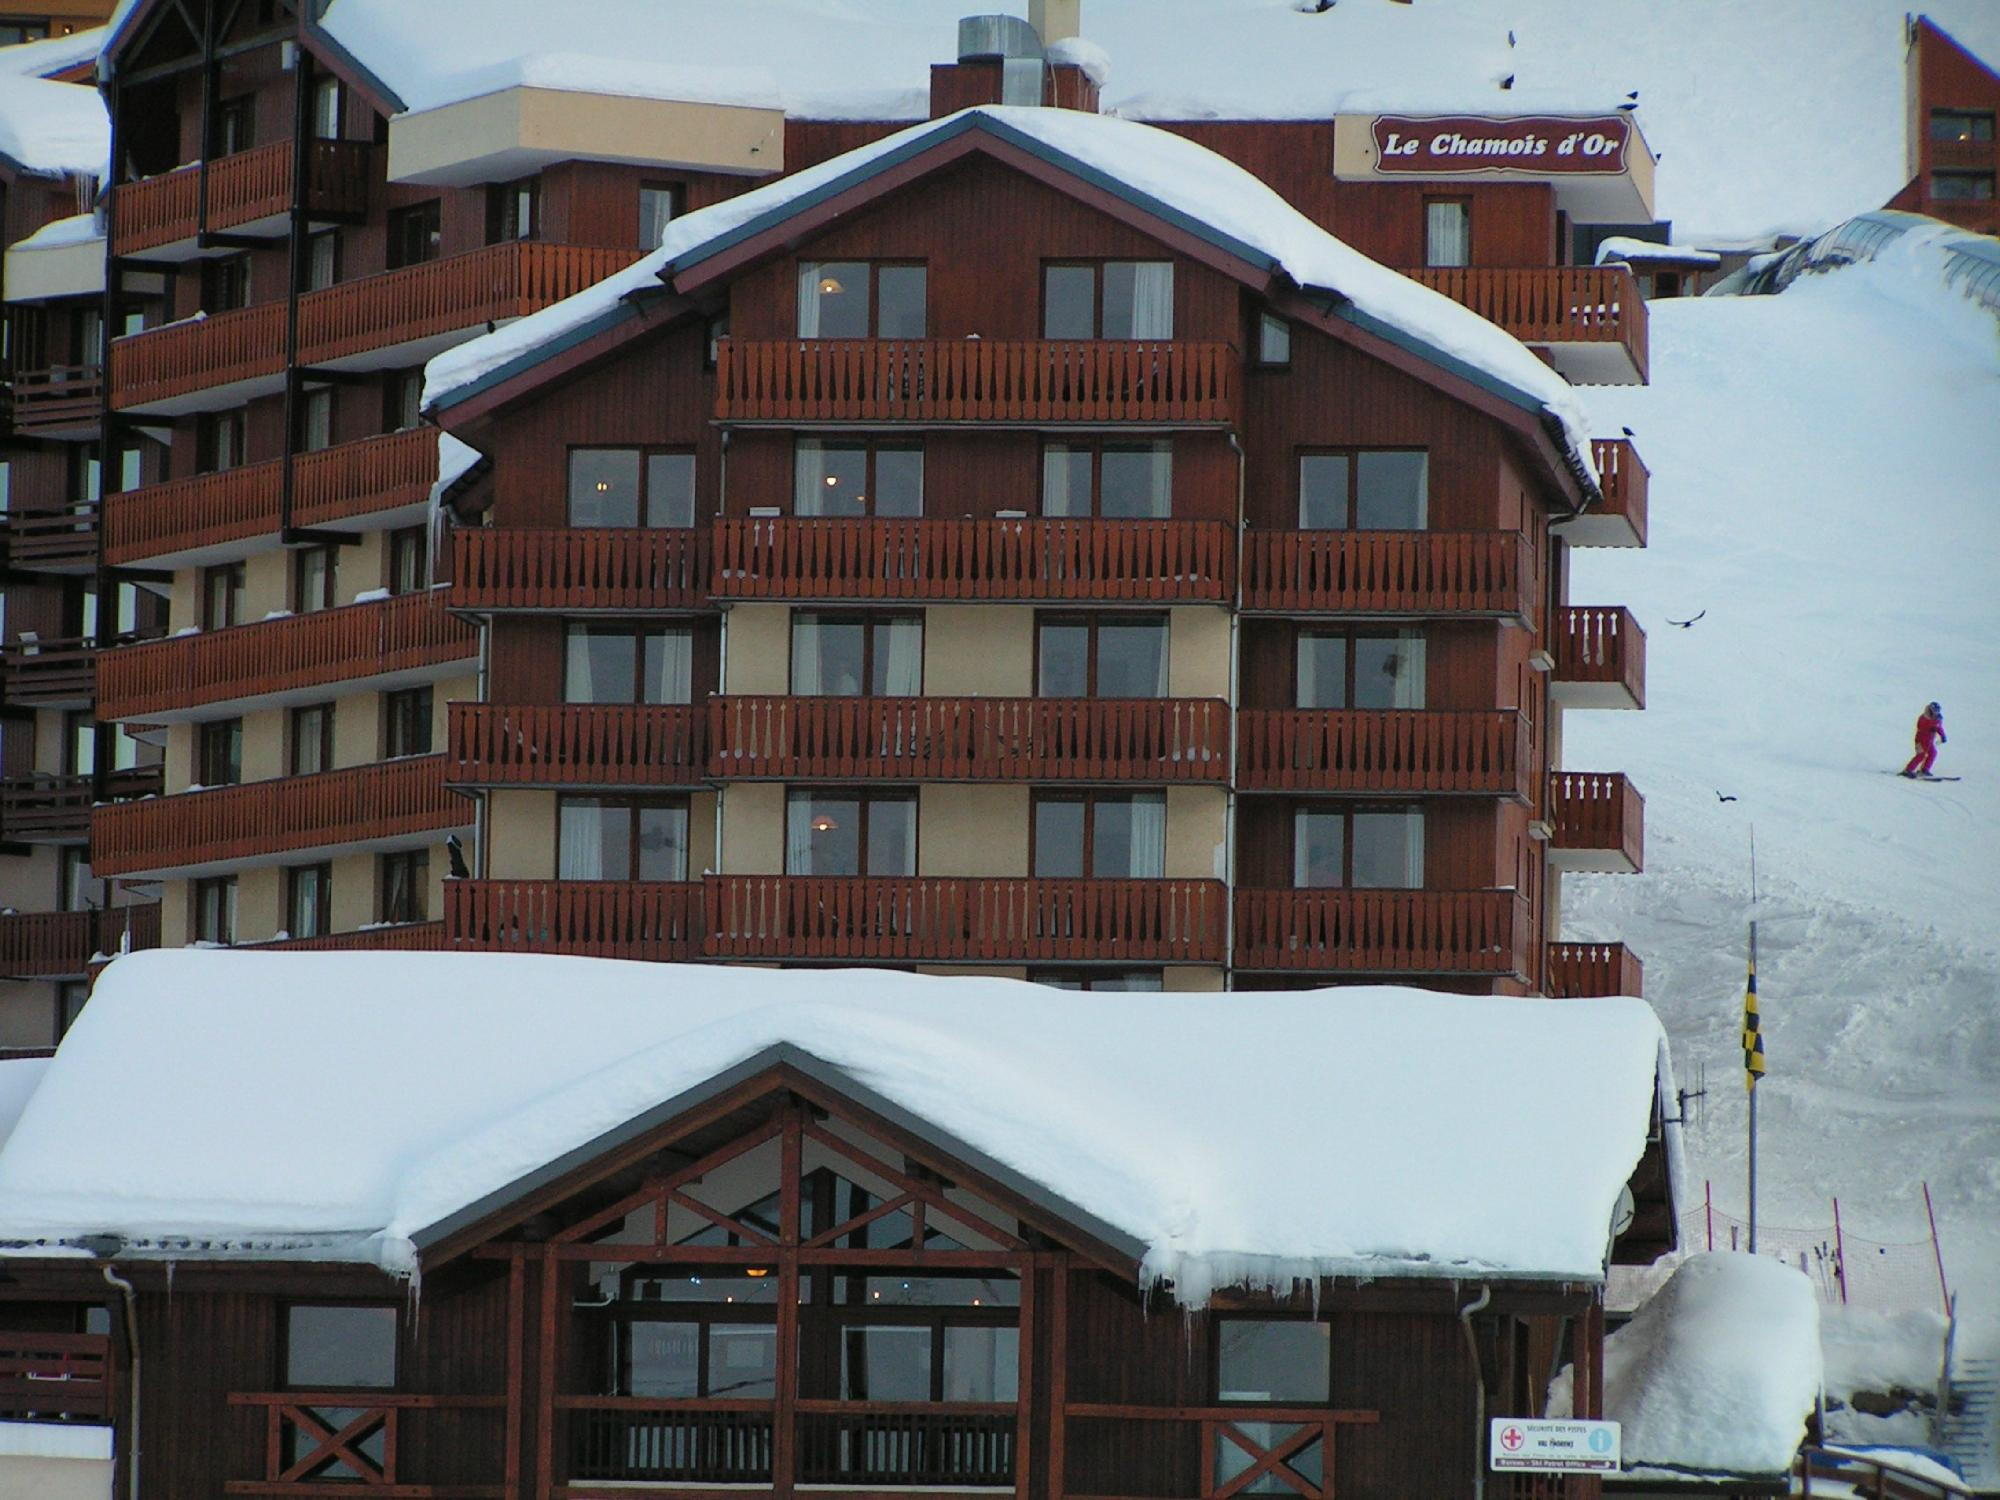 Residence Le Chamois d'Or